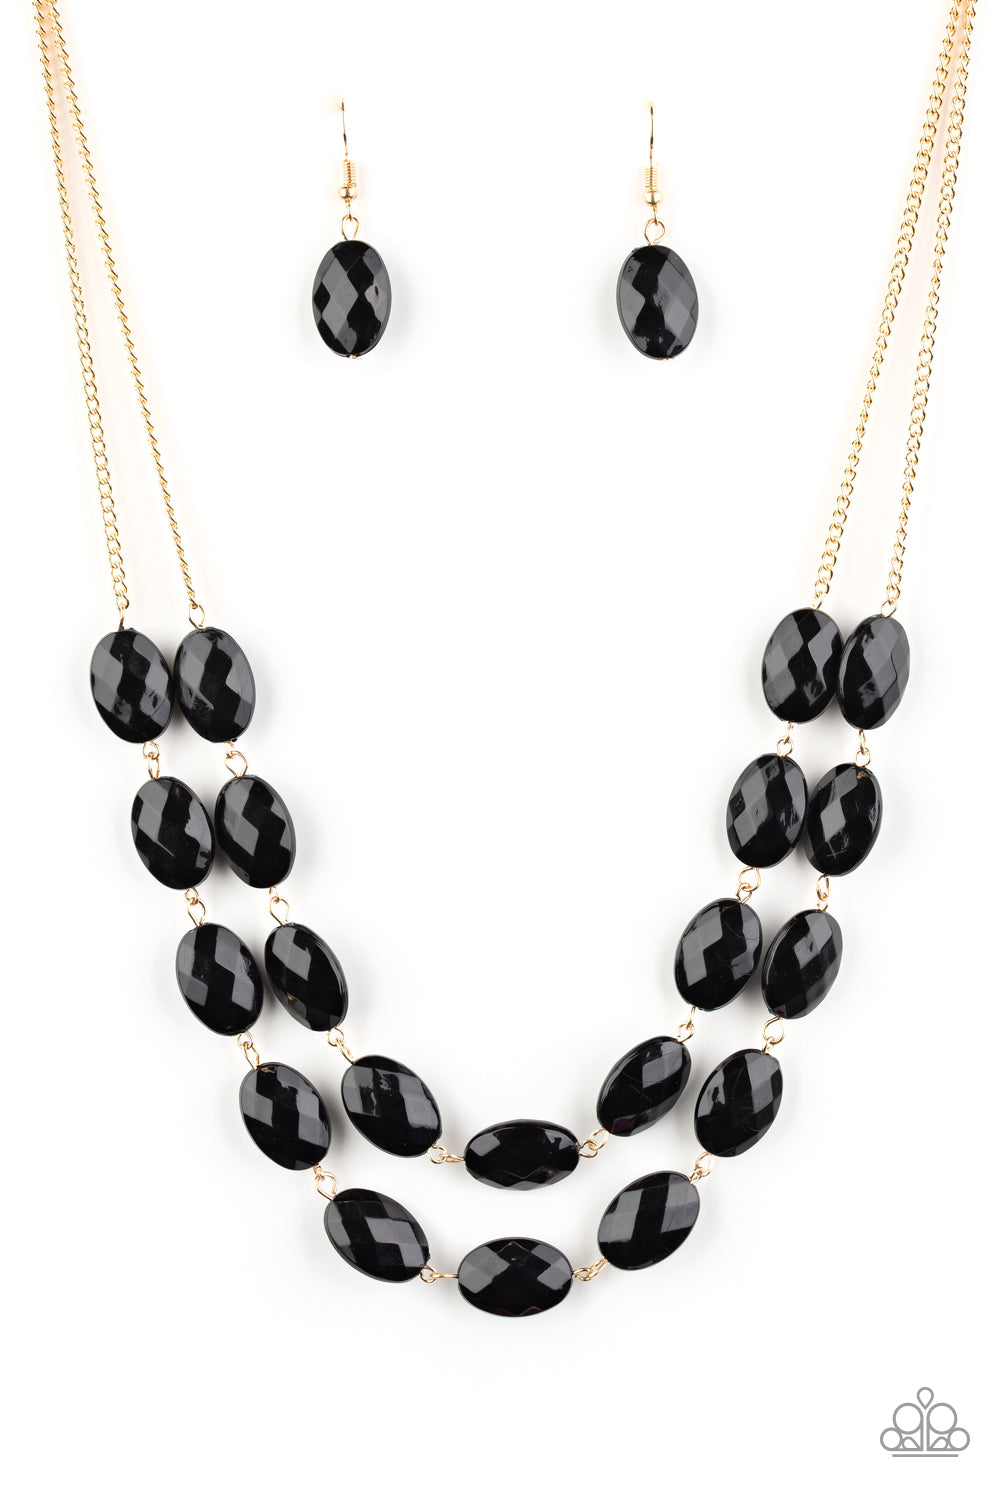 five-dollar-jewelry-max-volume-black-necklace-paparazzi-accessories